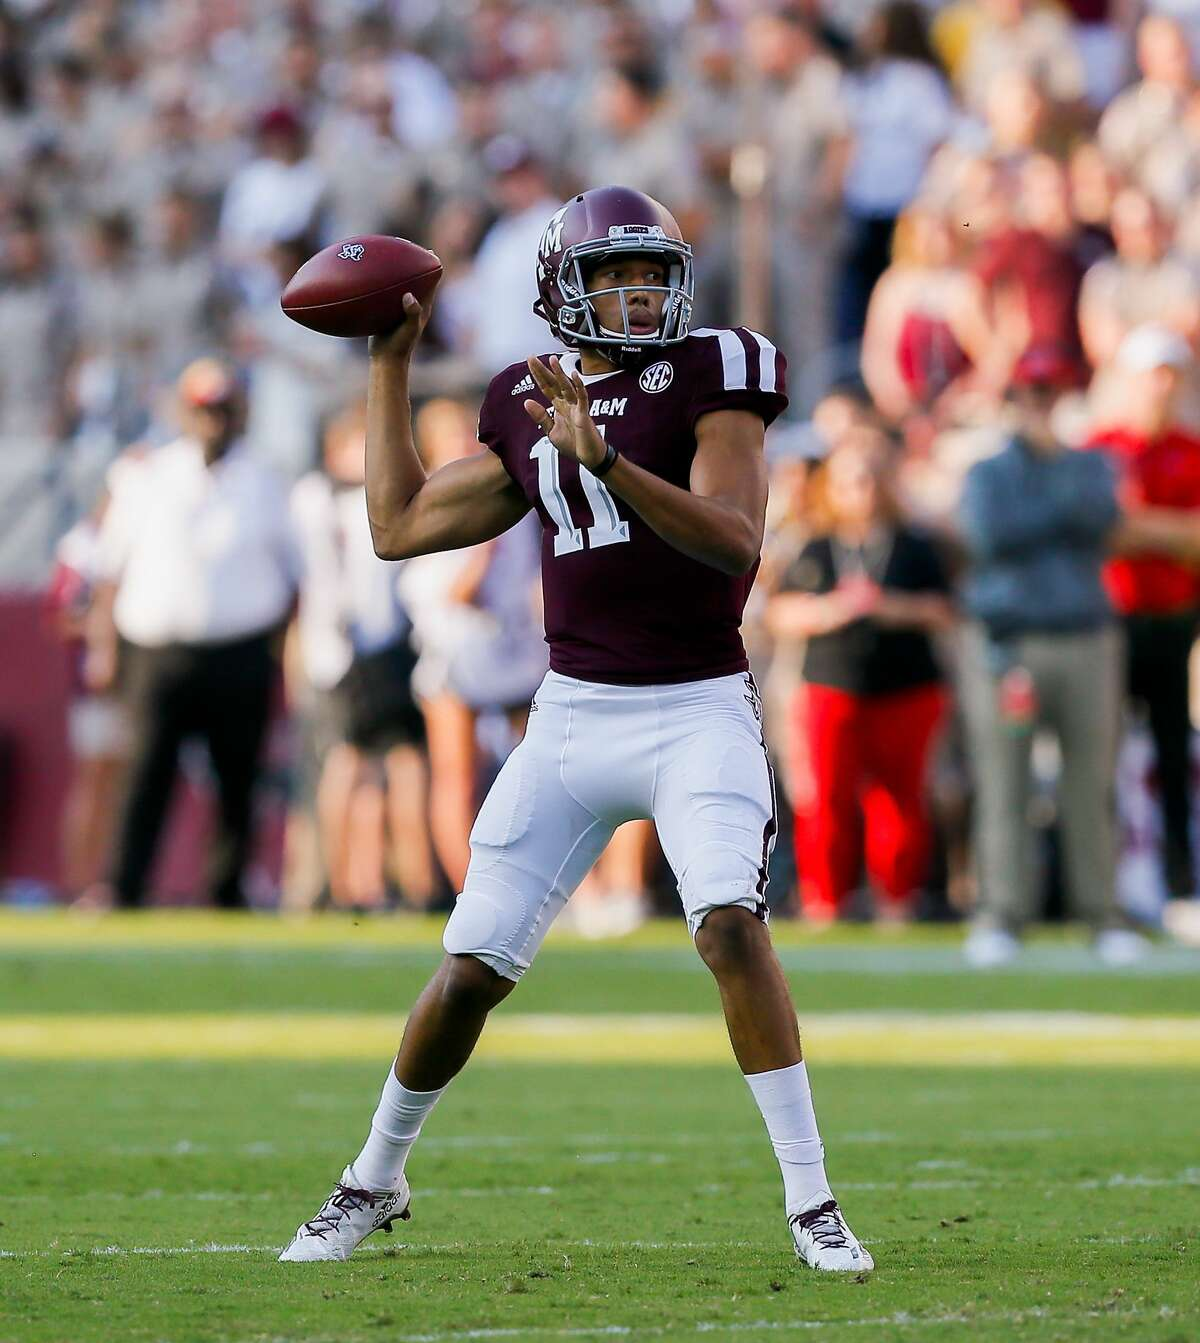 COLLEGE STATION, TX - SEPTEMBER 09: Kellen Mond #11 of the Texas A&M Aggies throws a touchdown pass in the first quarter against the Nicholls State Colonels at Kyle Field on September 9, 2017 in College Station, Texas. (Photo by Bob Levey/Getty Images)